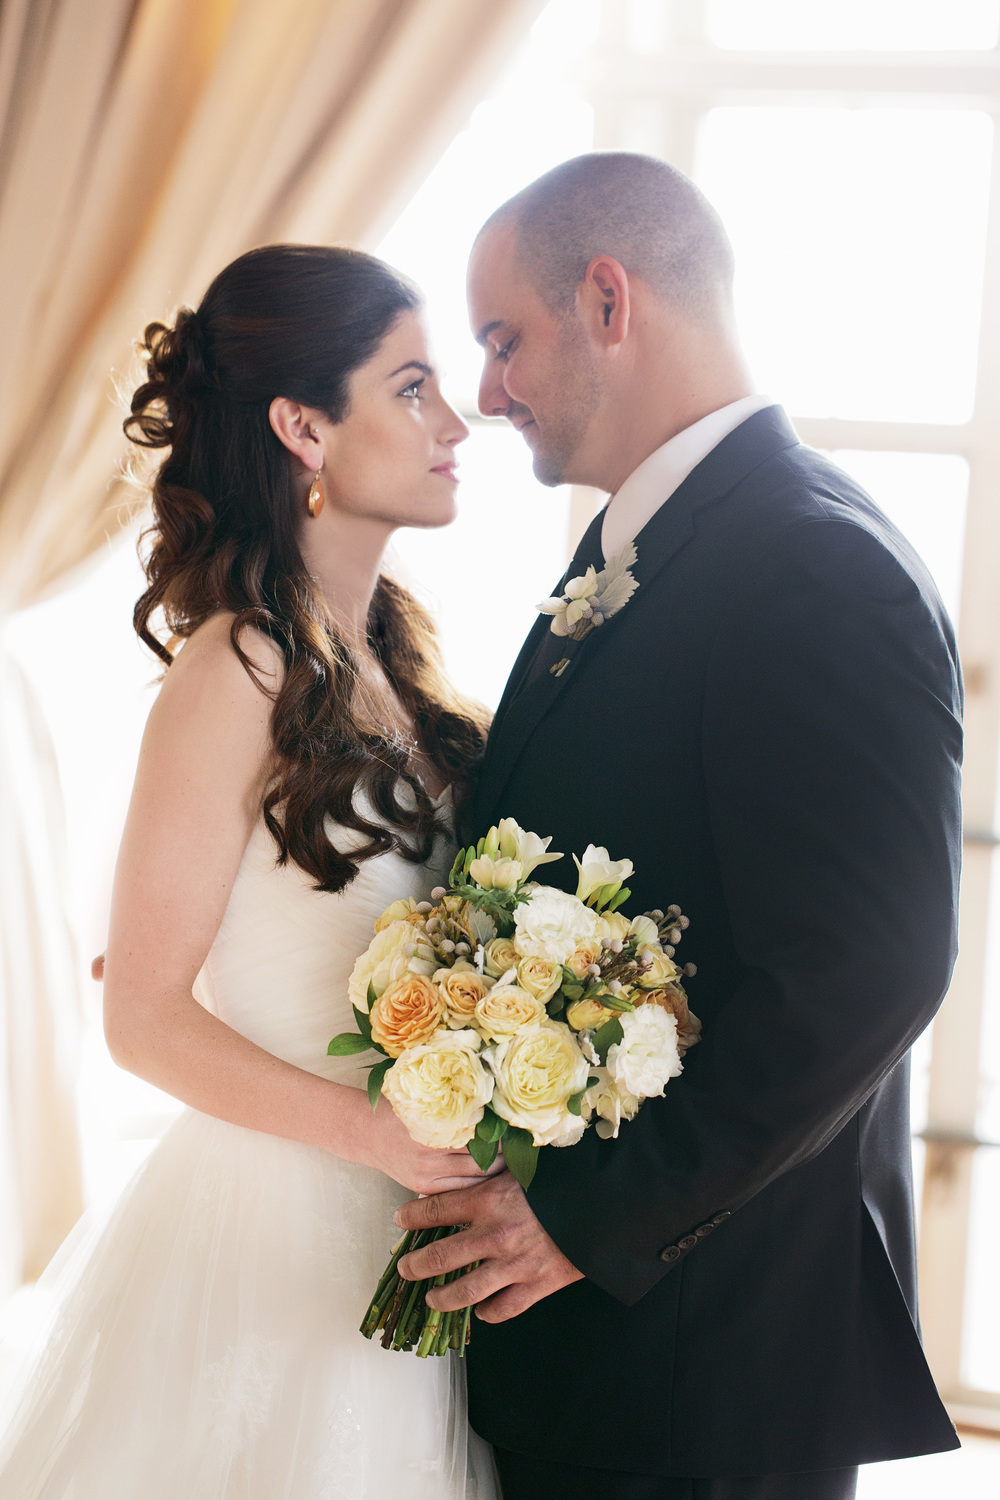 HNP_Opera-Delaware-Peach-Emerald-Wedding-Styled-Shoot_062.jpg